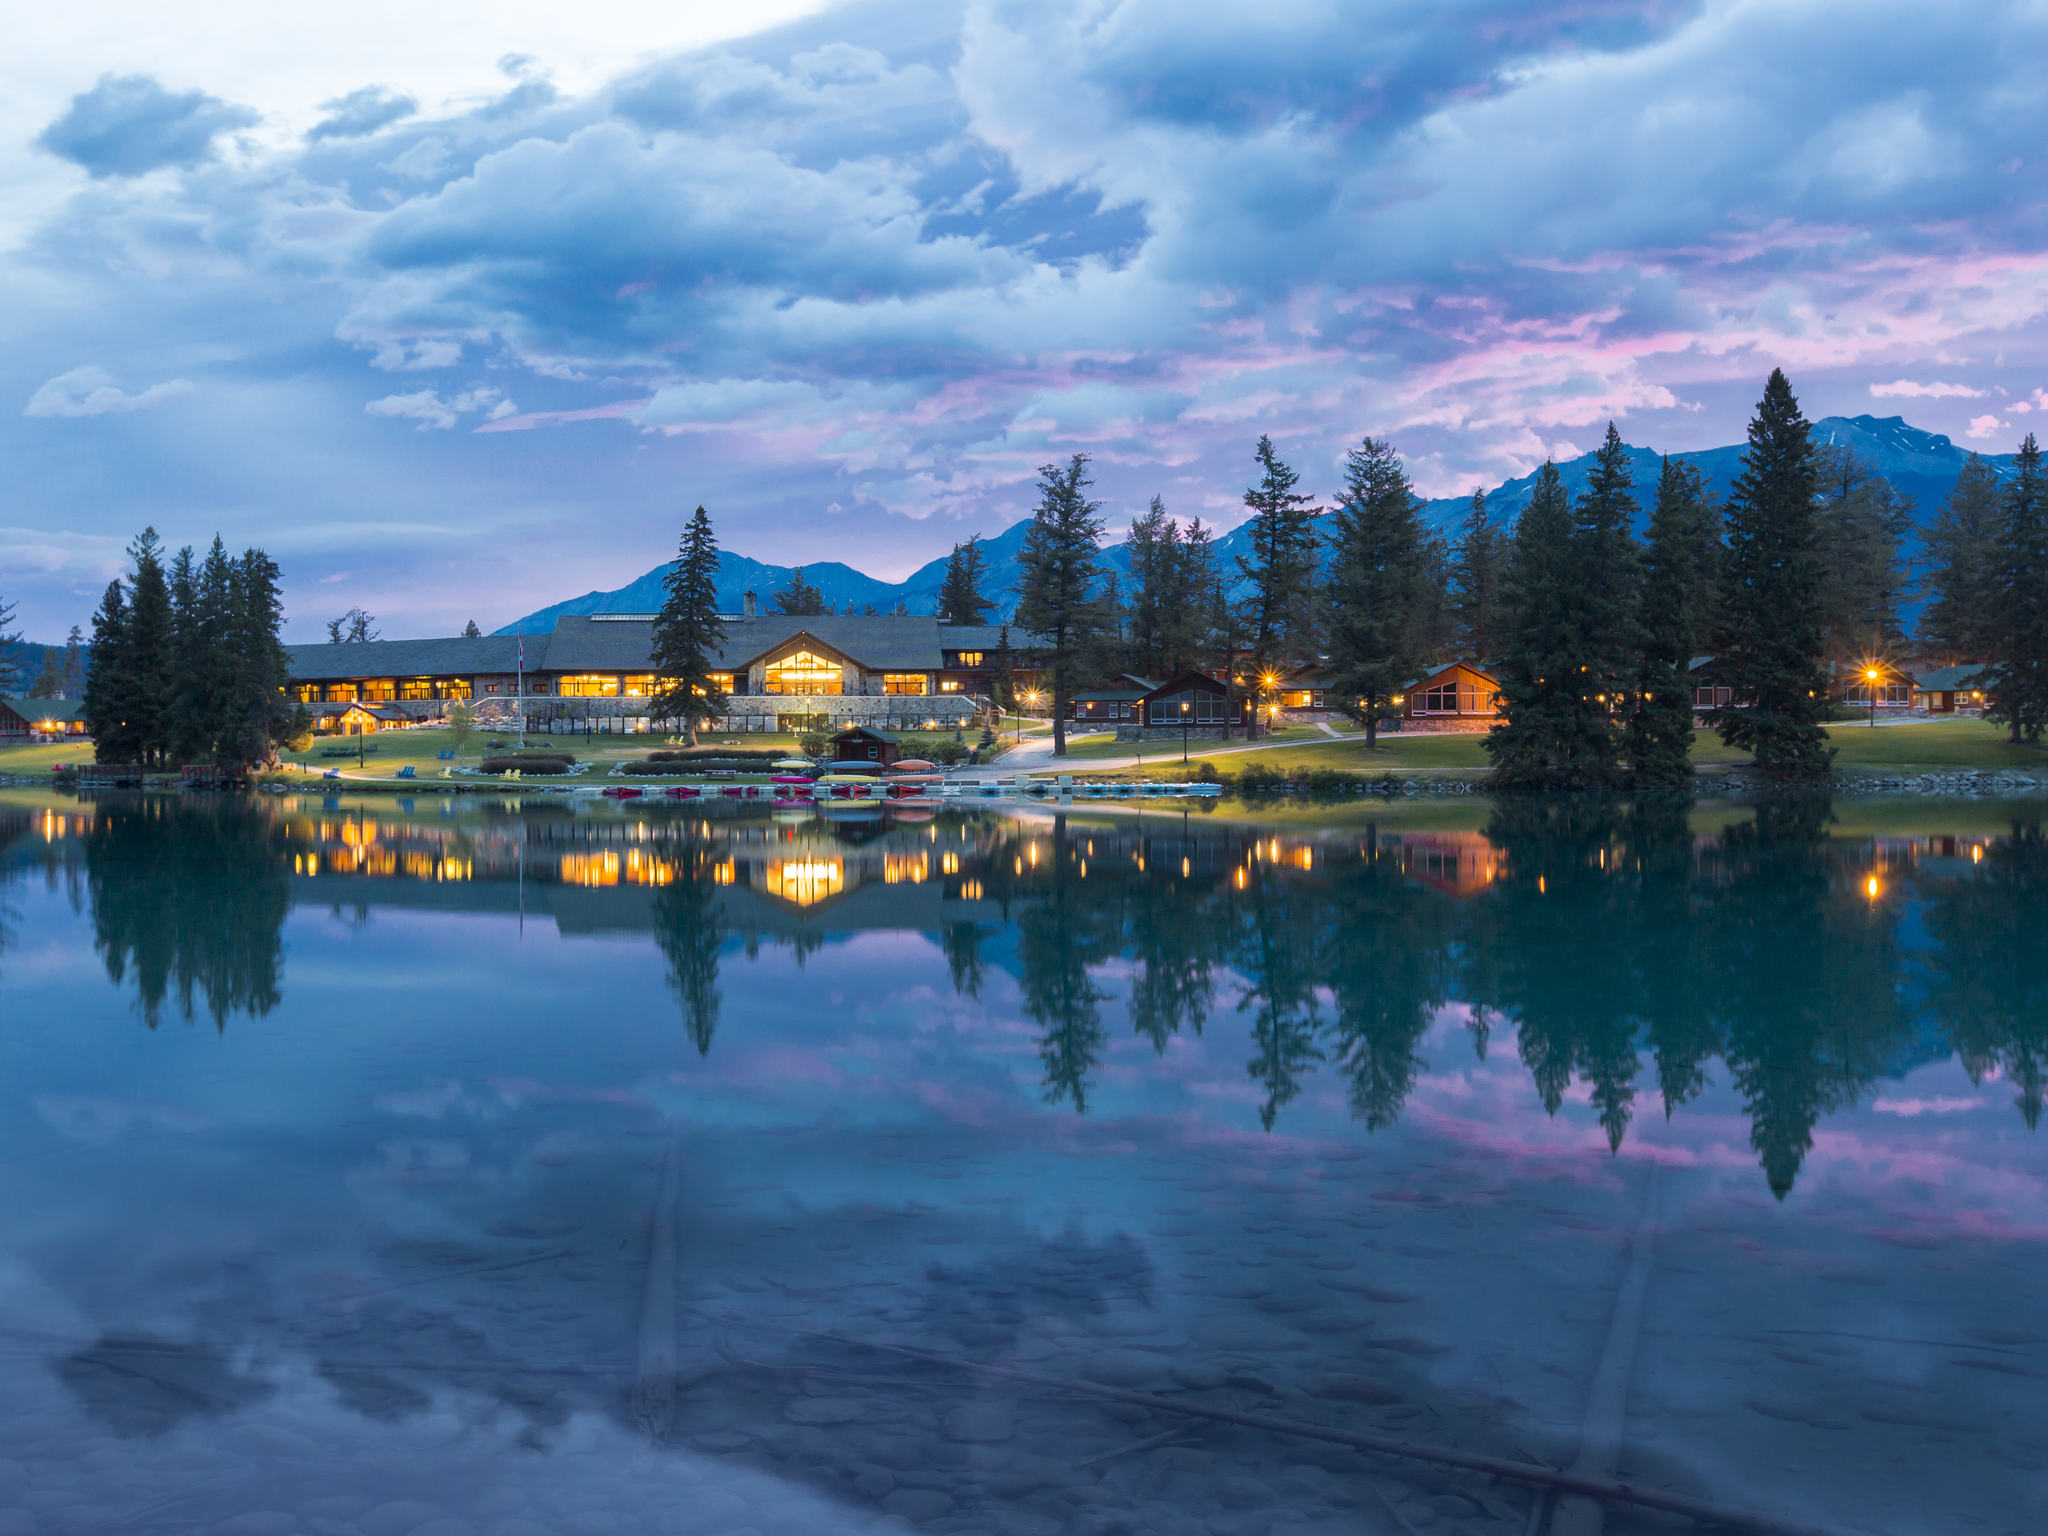 Otel – Fairmont Jasper Park Lodge